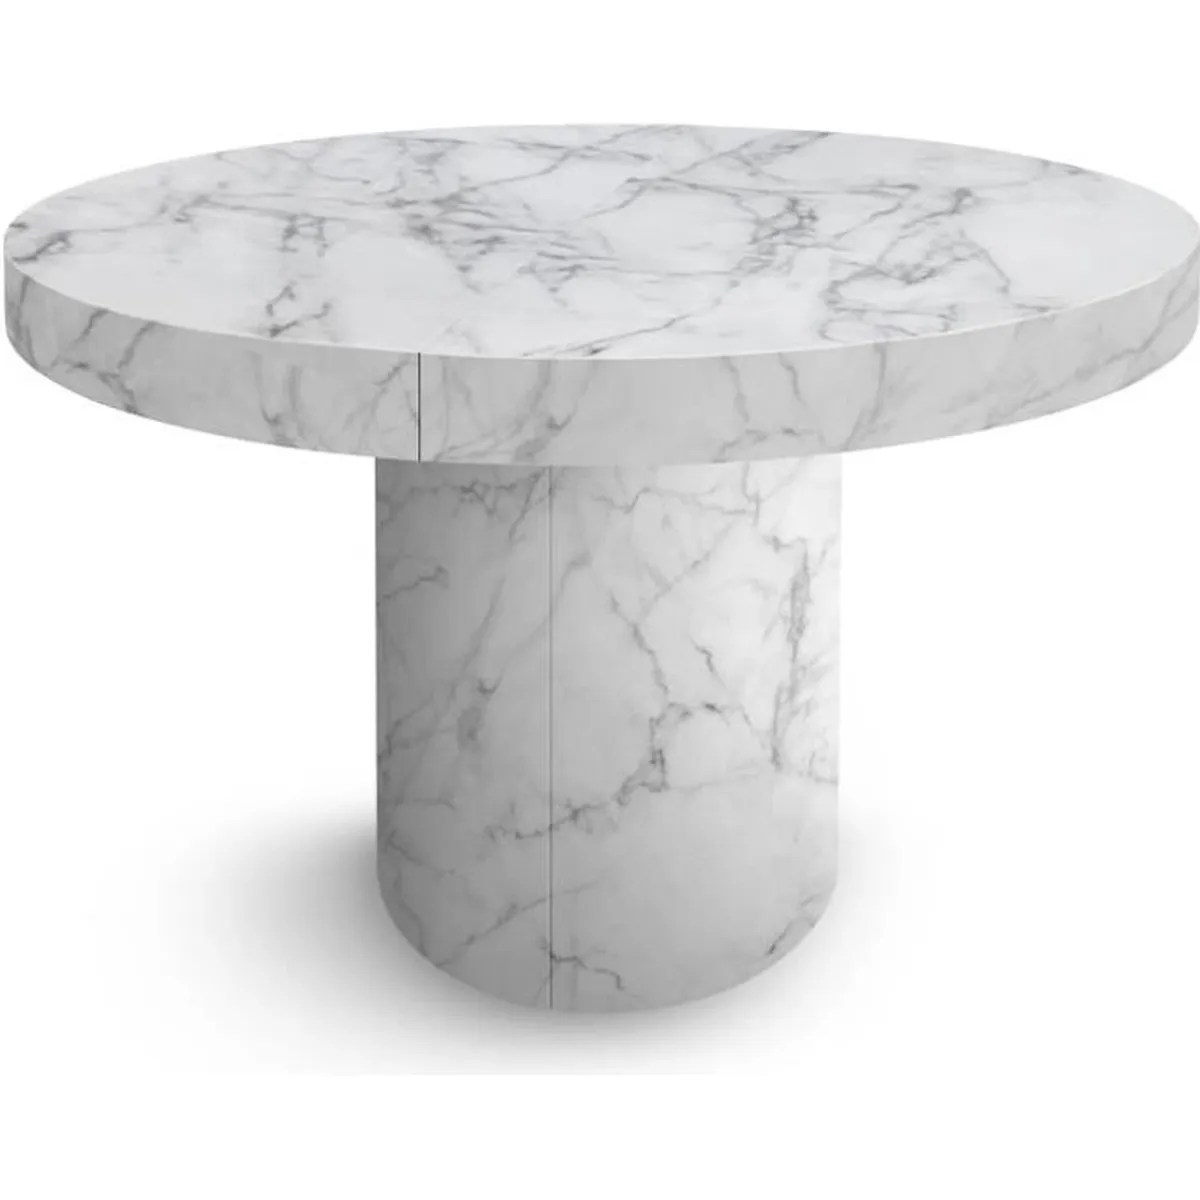 Table Pied Central Rallonge Table Ronde A Rallonge Pied Central Achat Vente Pas Cher